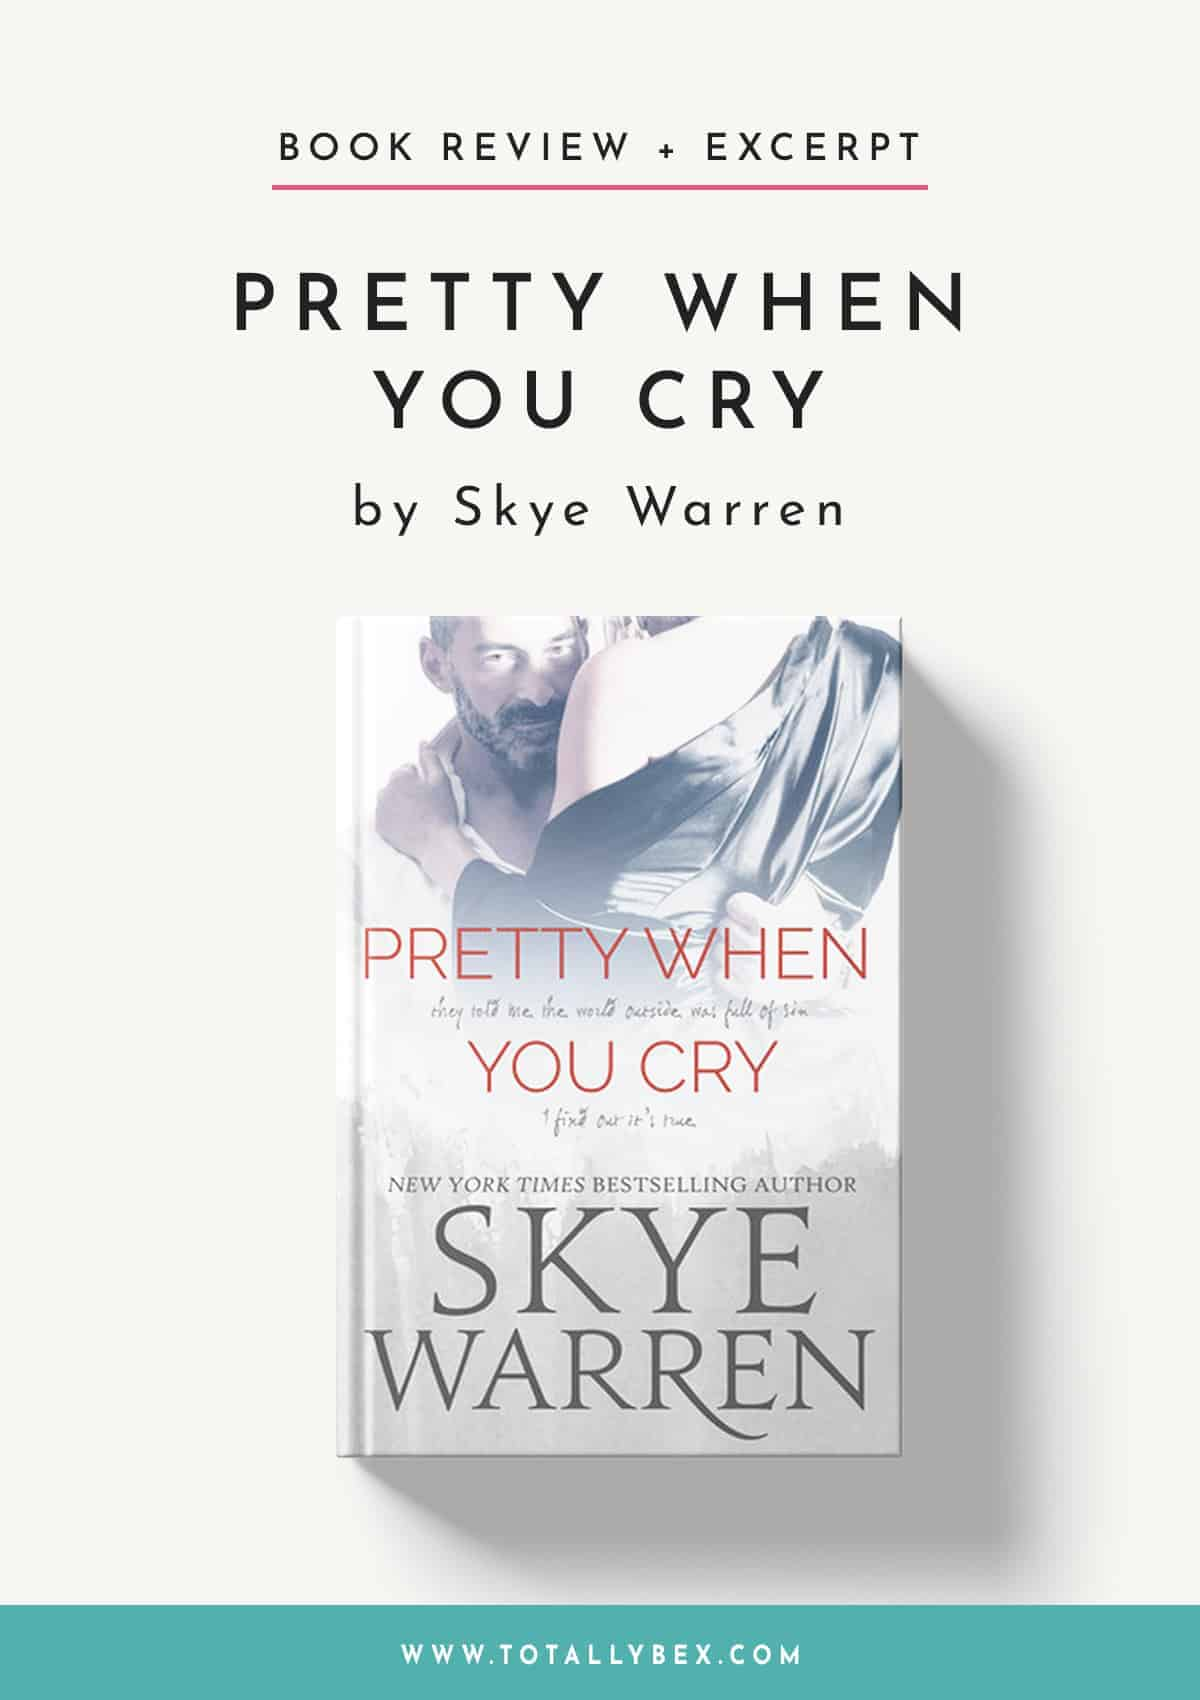 Pretty When You Cry by Skye Warren-BookReview